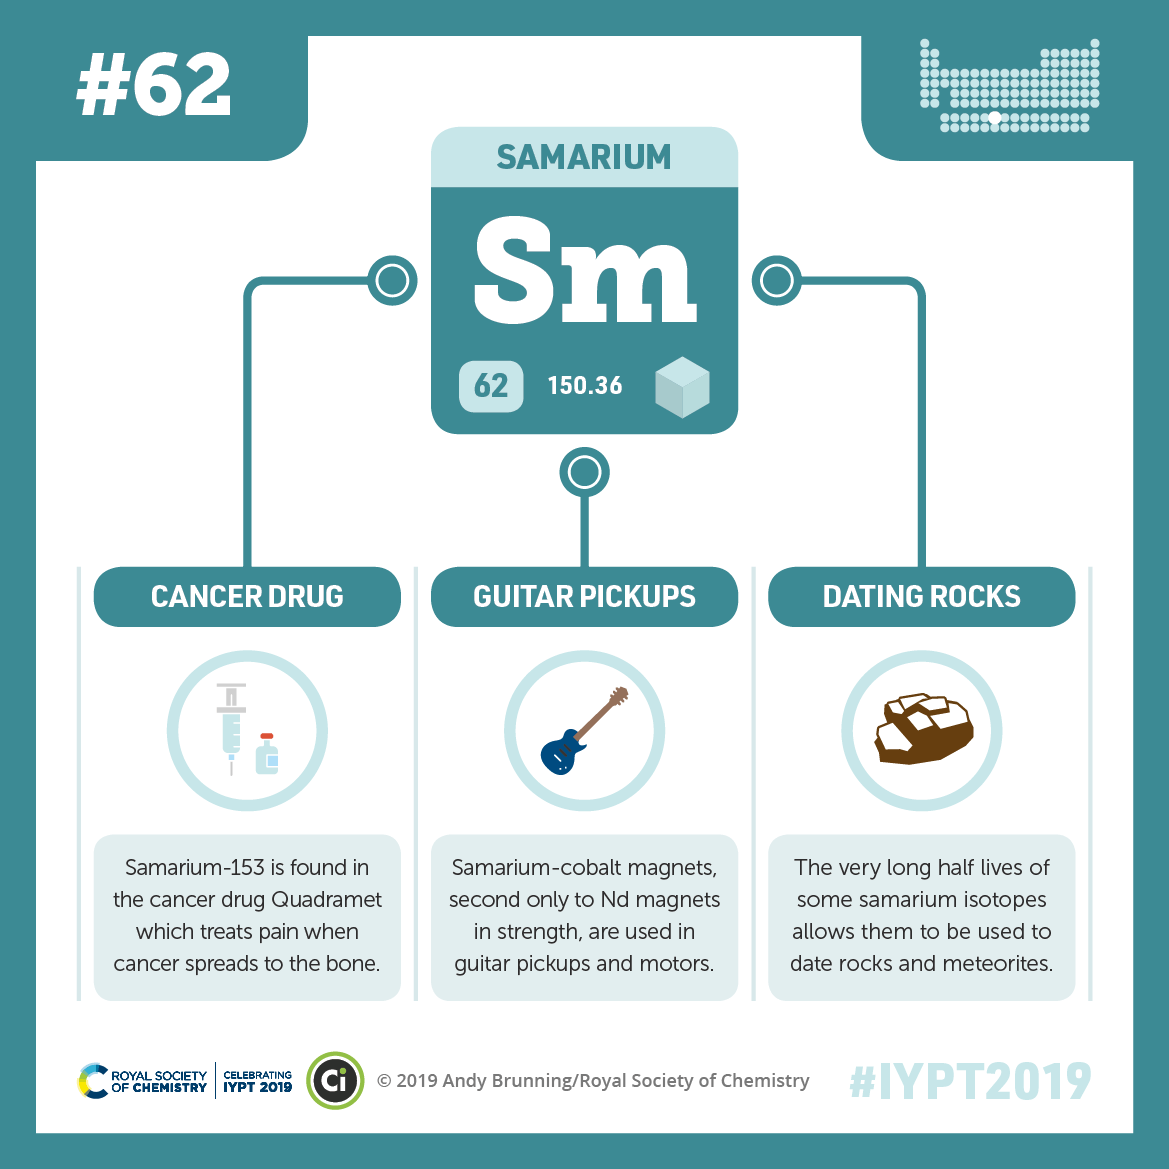 IYPT 2019 Elements 062: Samarium: Guitar pickups and rock dating